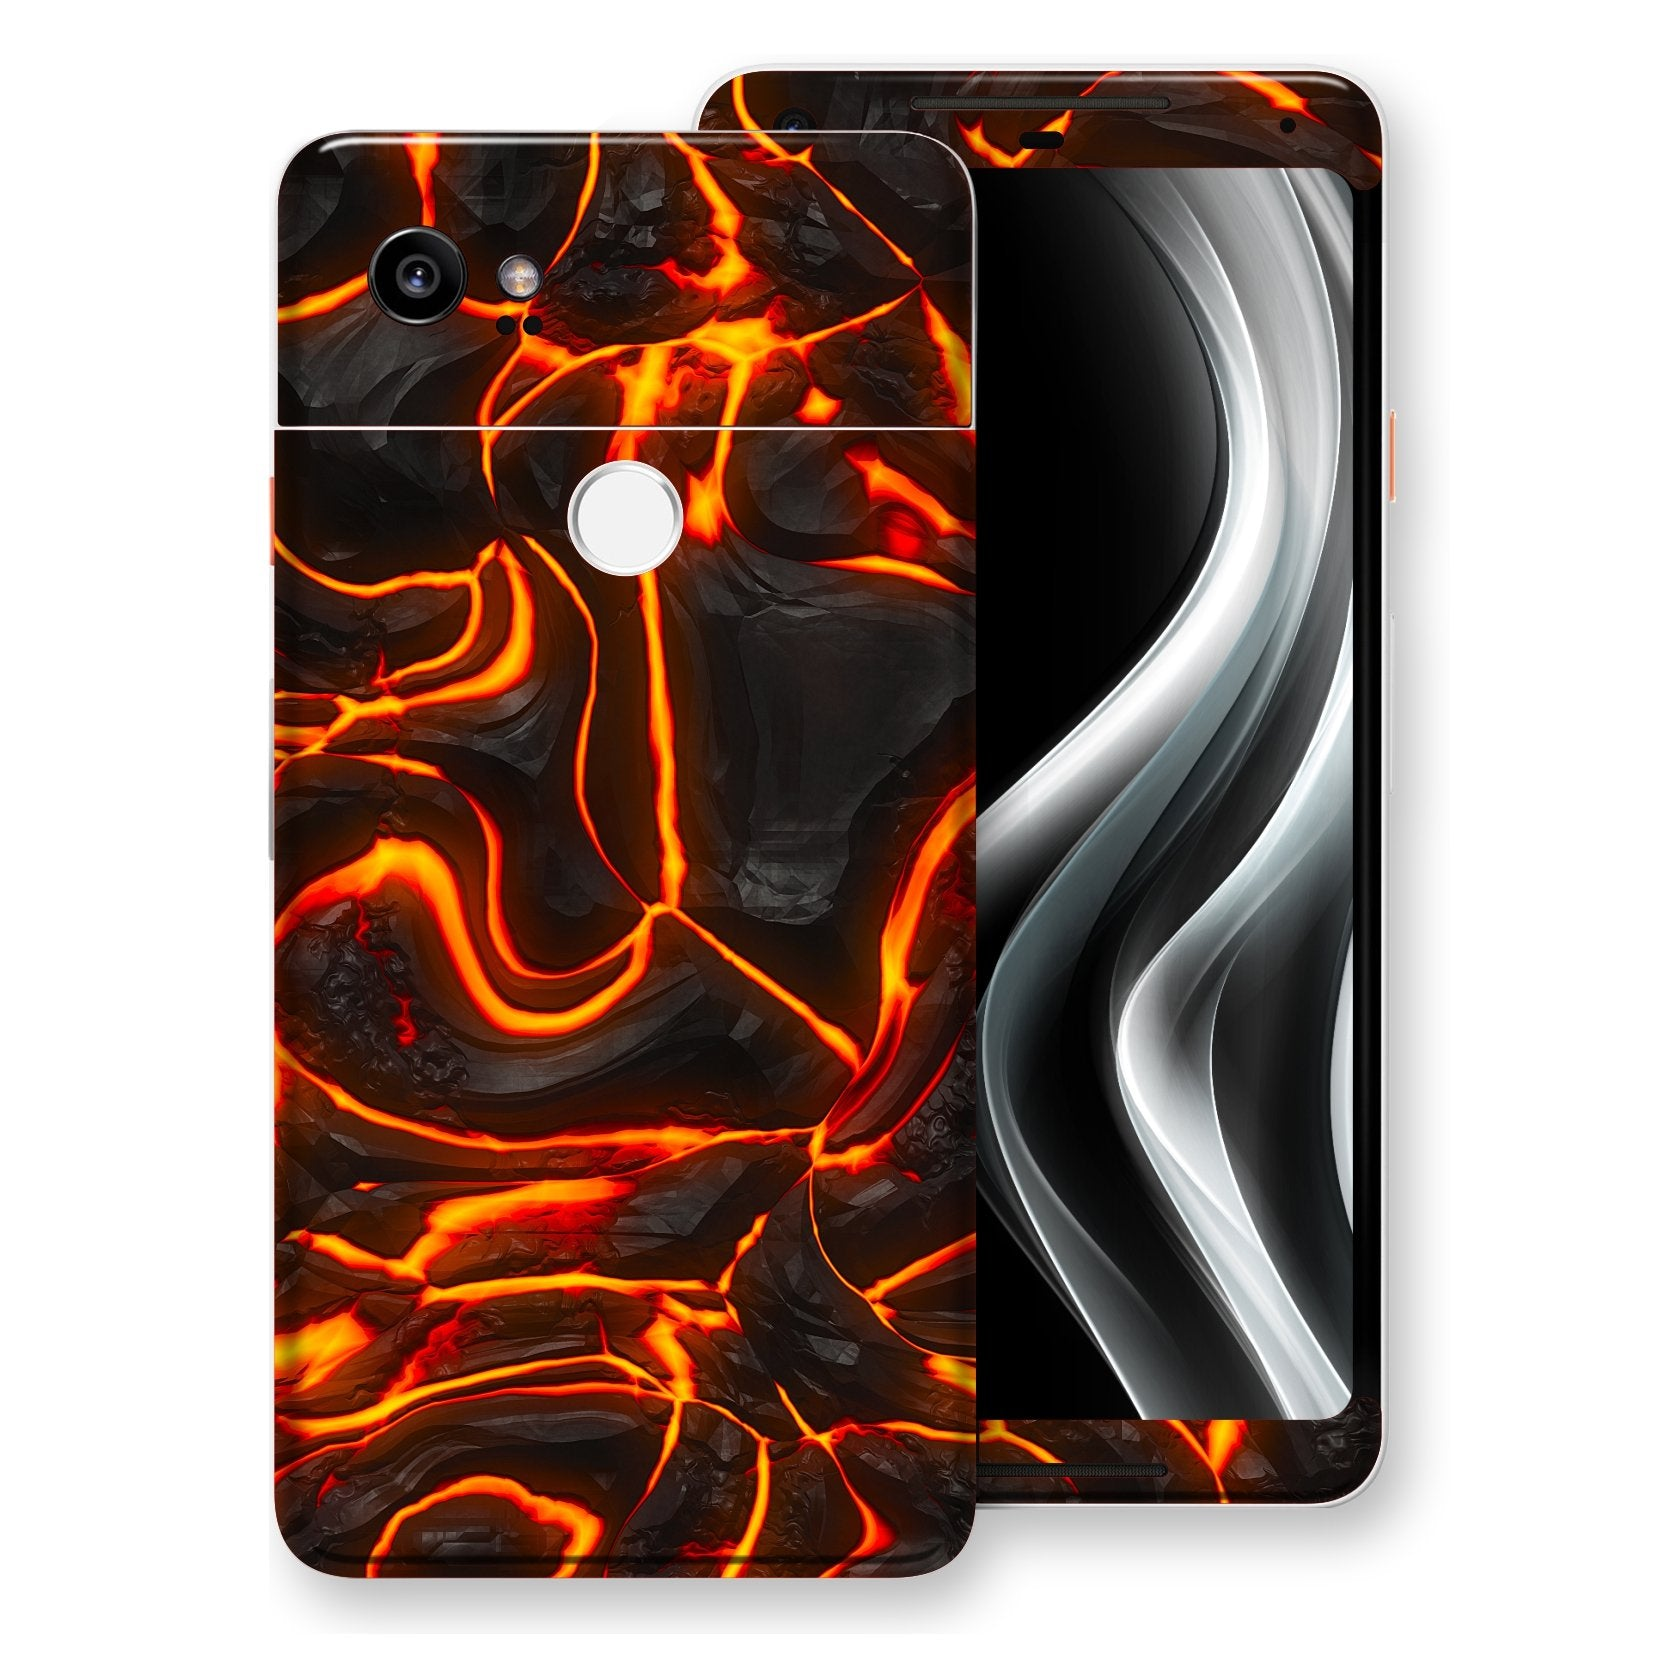 Google Pixel 2 XL Print Custom Signature Lava Skin Wrap Decal by EasySkinz